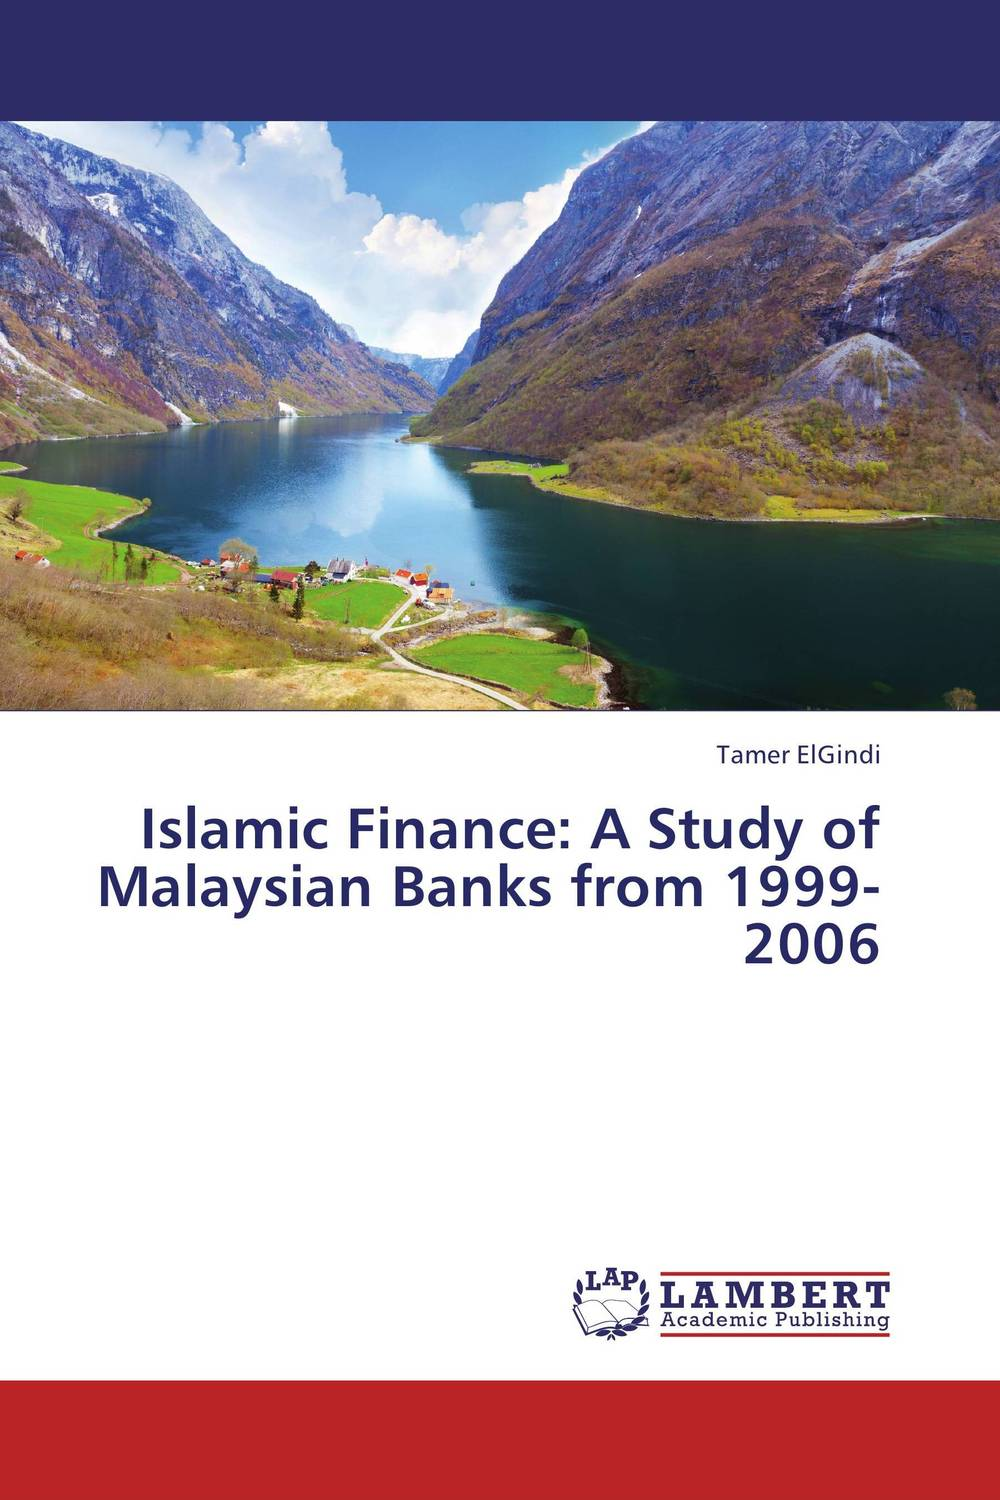 Islamic Finance: A Study of Malaysian Banks from 1999-2006 efficiency of conventional versus islamic banks